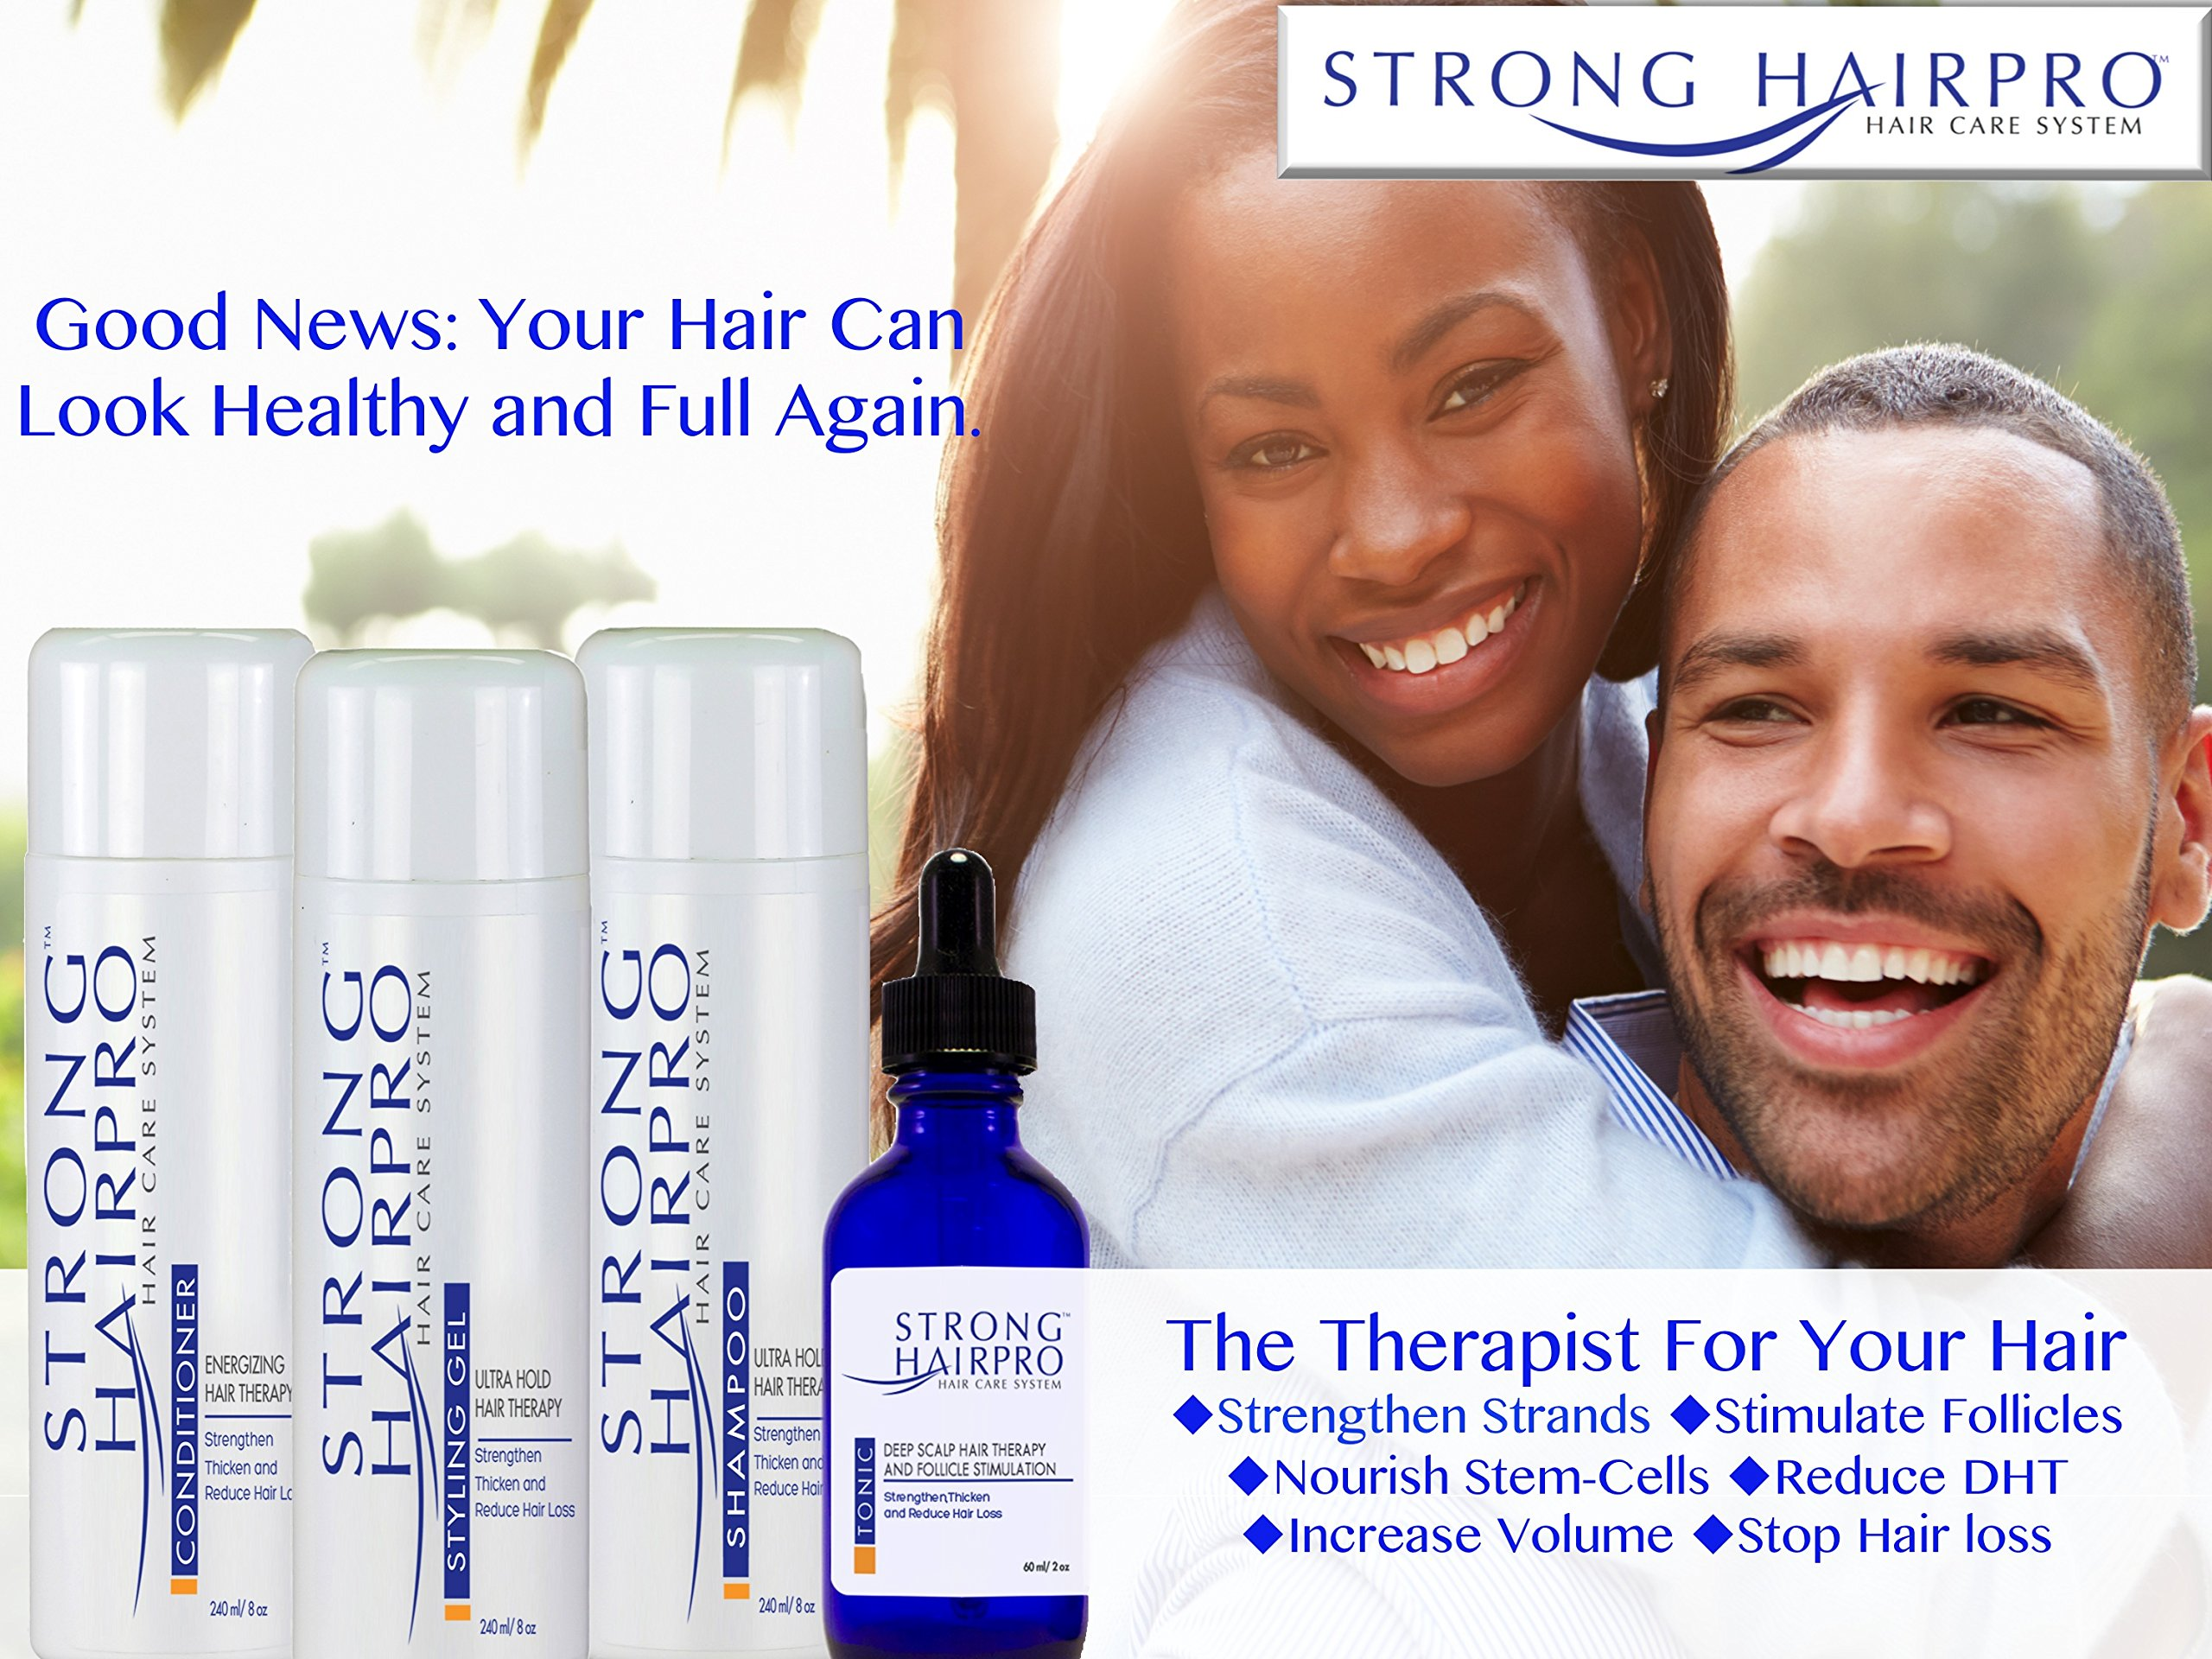 Strong HairPro New Hair Strengthening and Growth Stimulating Peptide Shampoo for Hair Loss Prevention with Caffeine, 8 Fluid Ounce by Strong HairPro (Image #8)